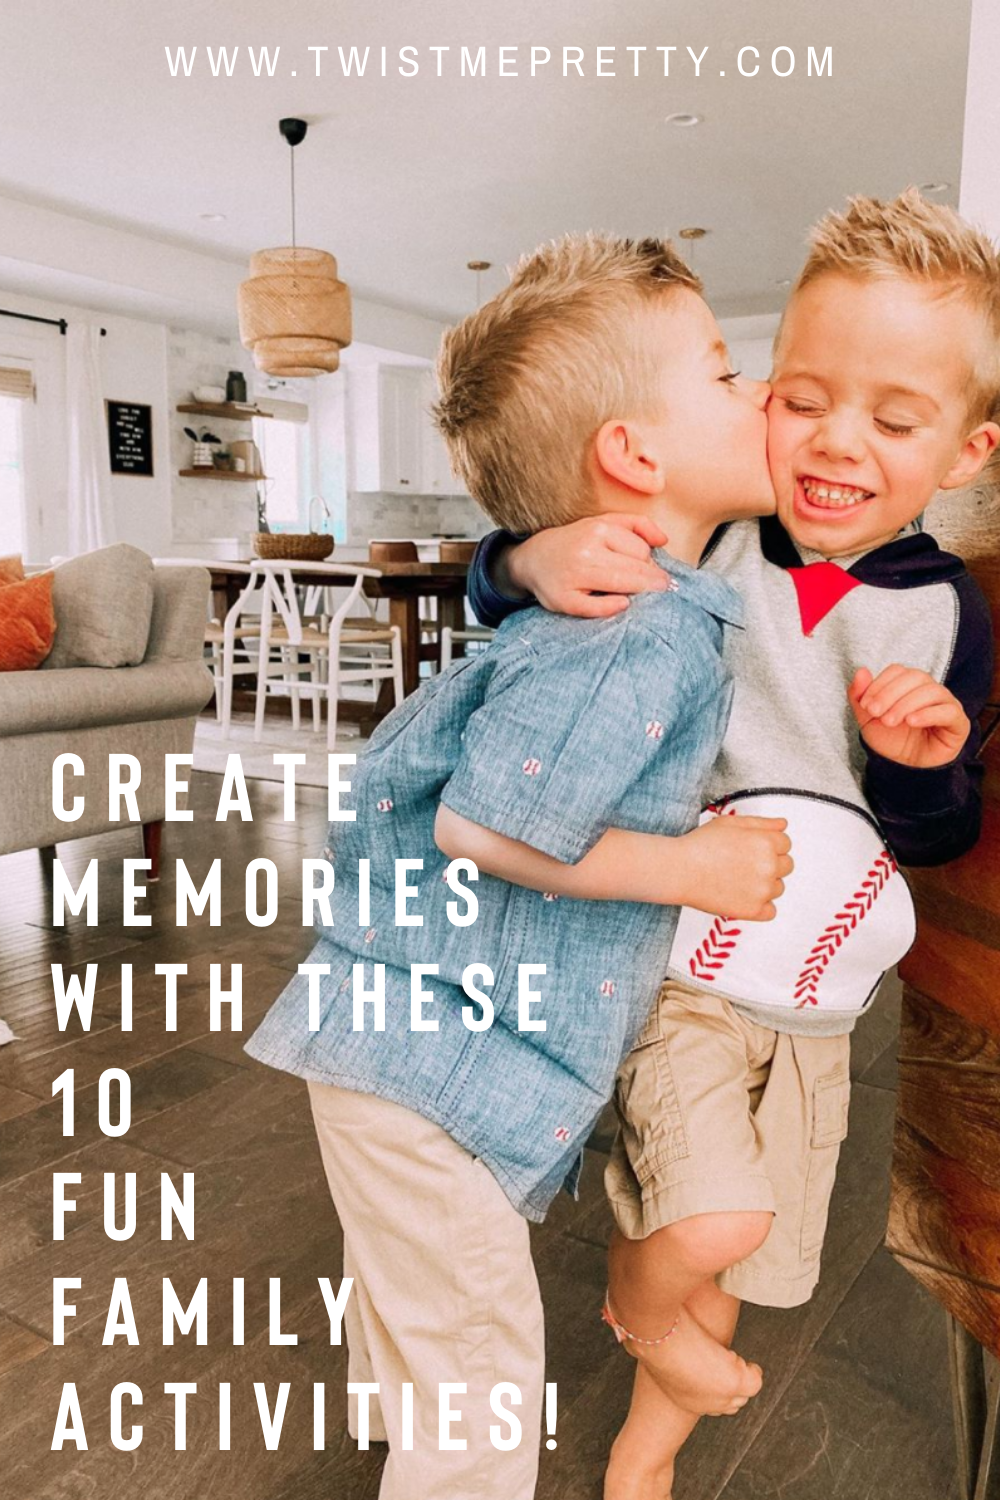 Create memories with these 10 fun family activities! www.twistmepretty.com